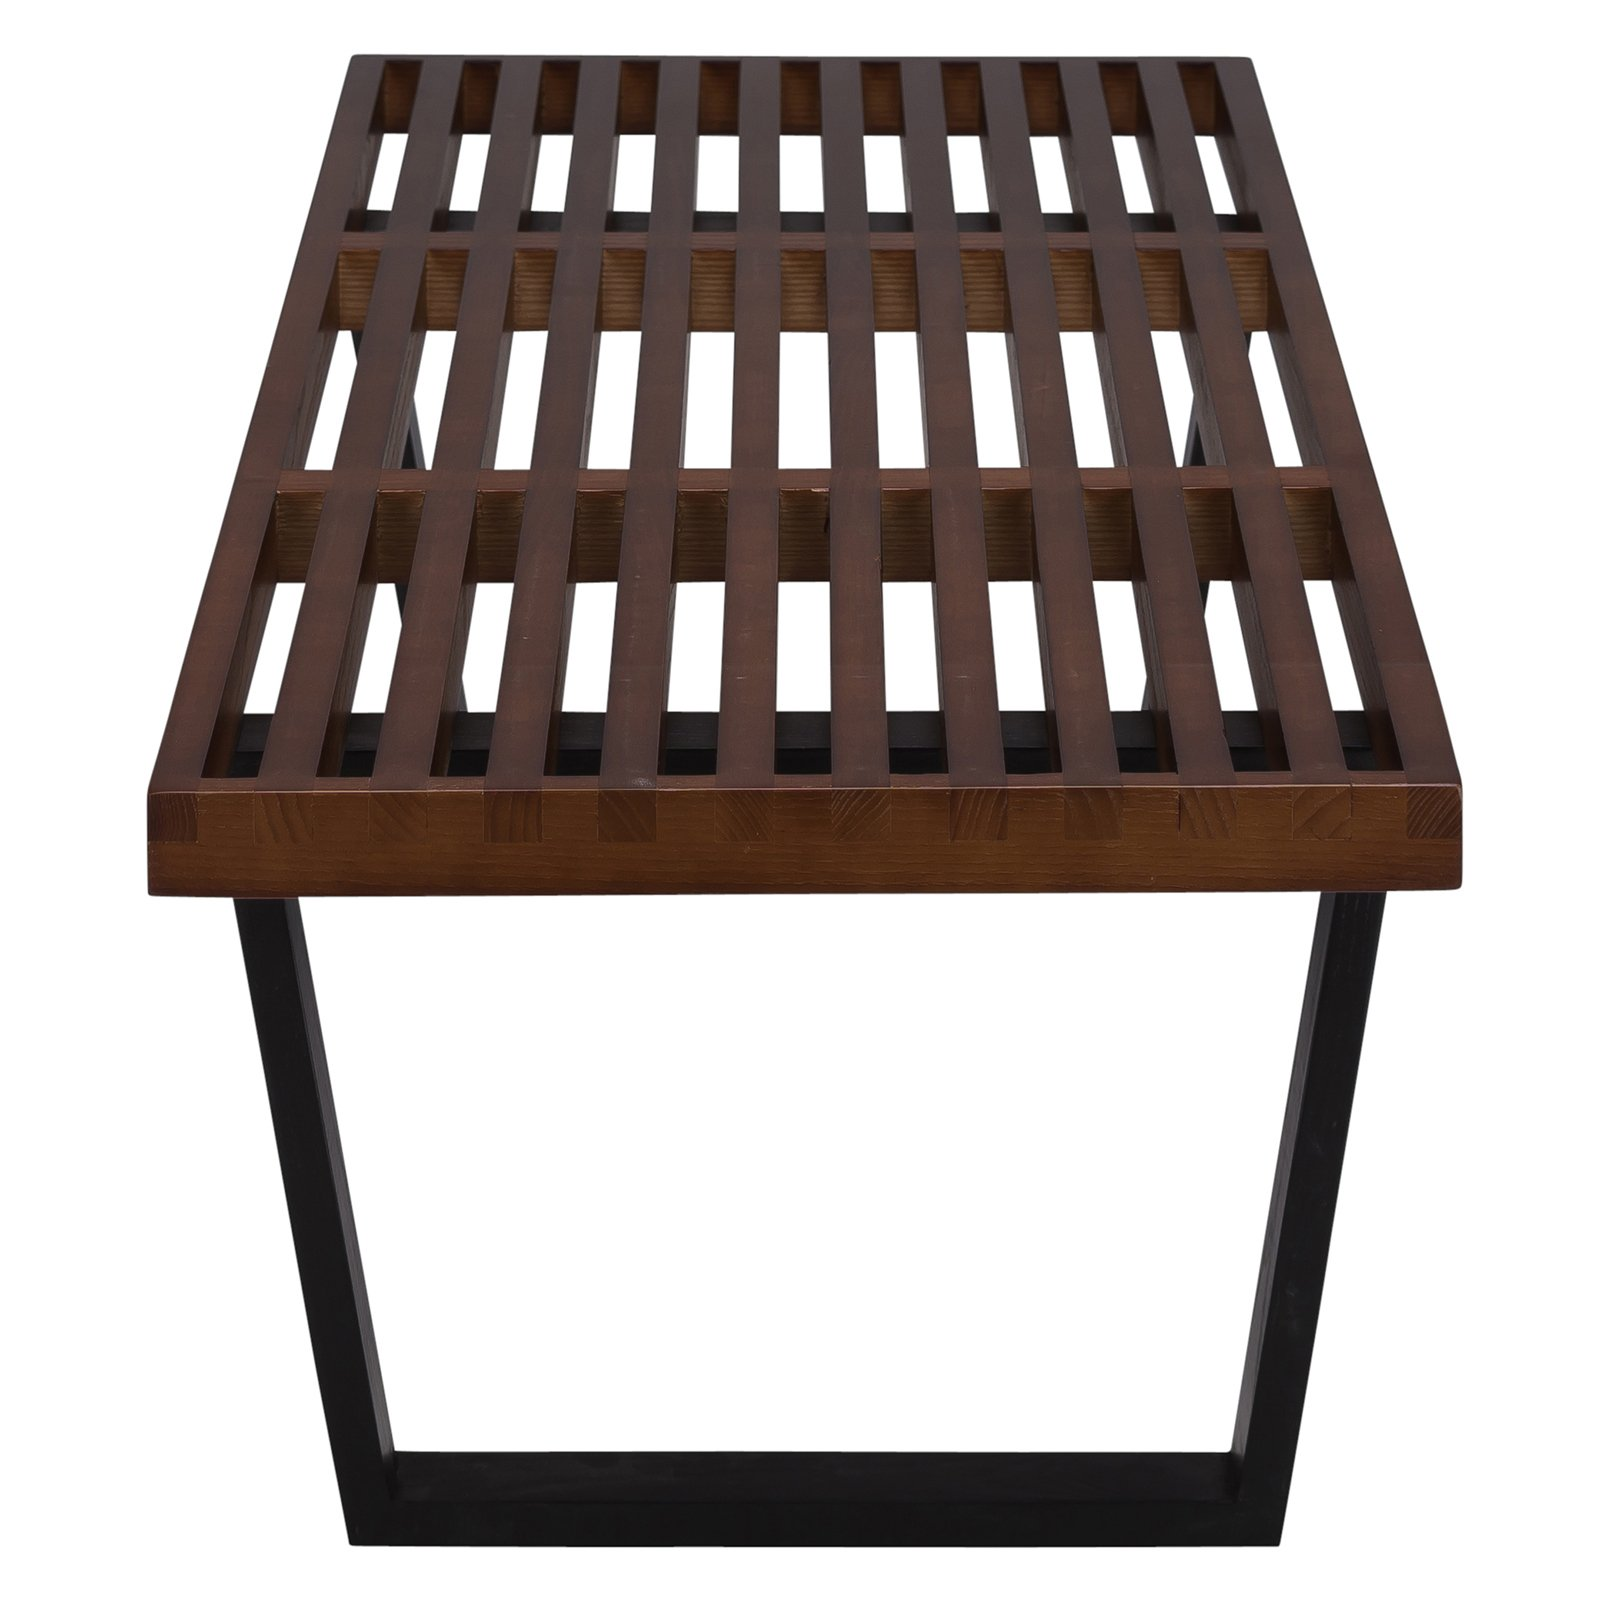 Poly and Bark George Nelson Platform Style Bench, 5′